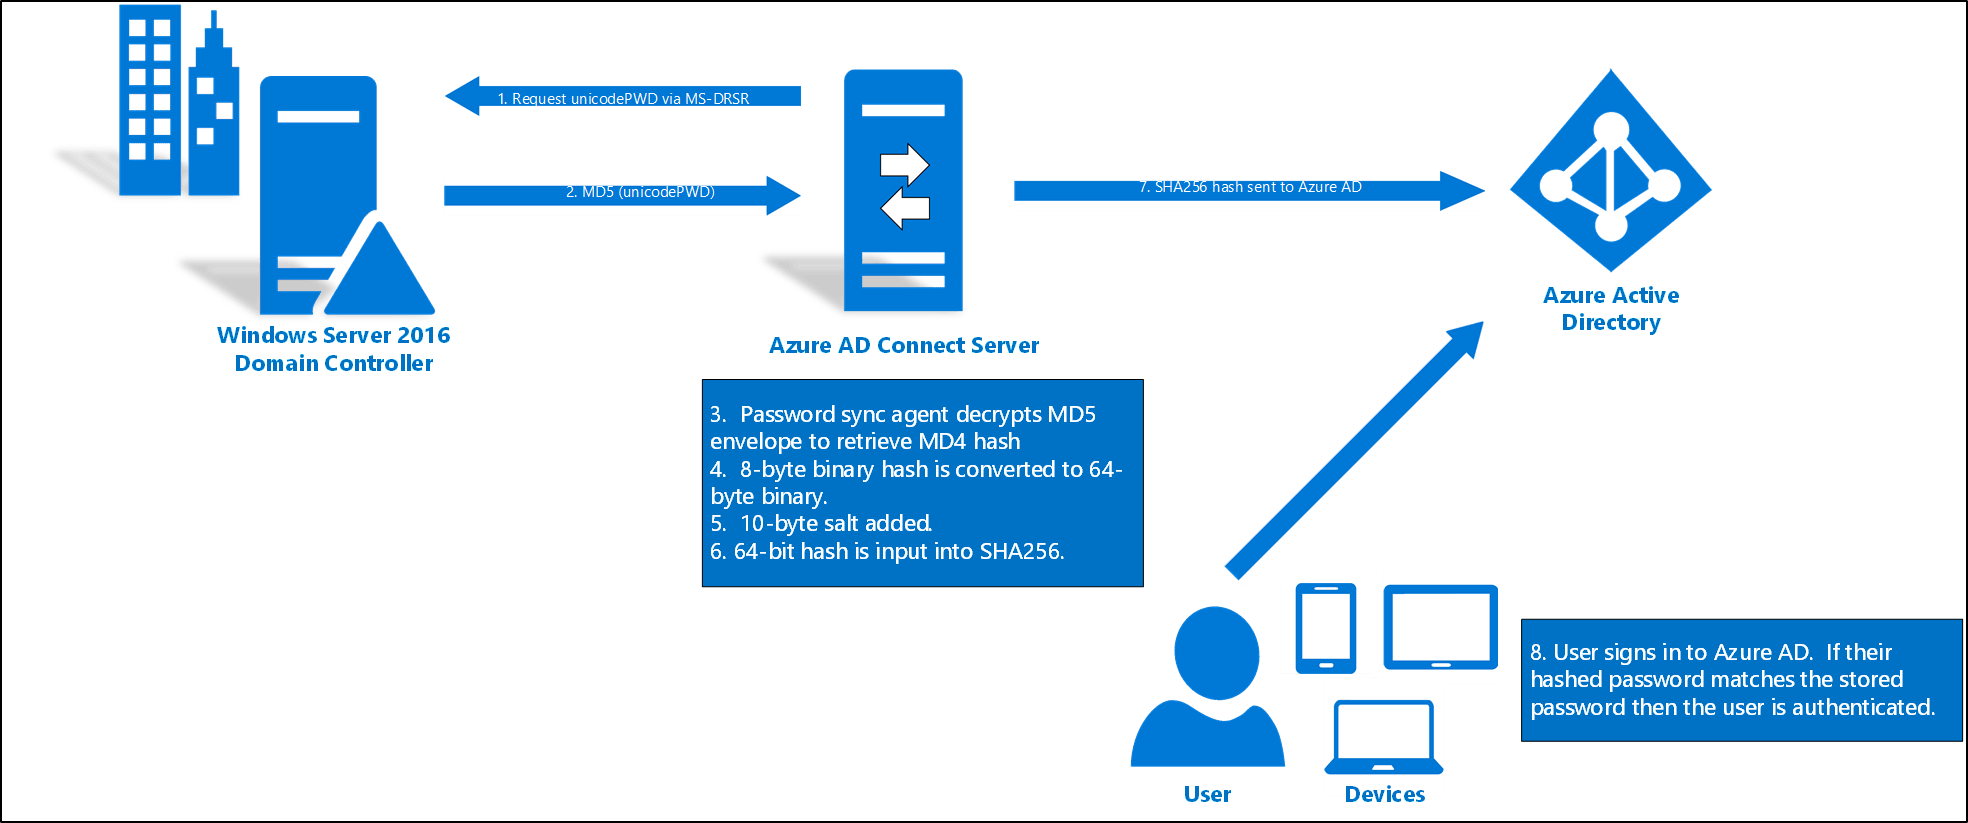 sql server architecture diagram with explanation 2003 ford expedition vacuum implement password hash synchronization azure ad